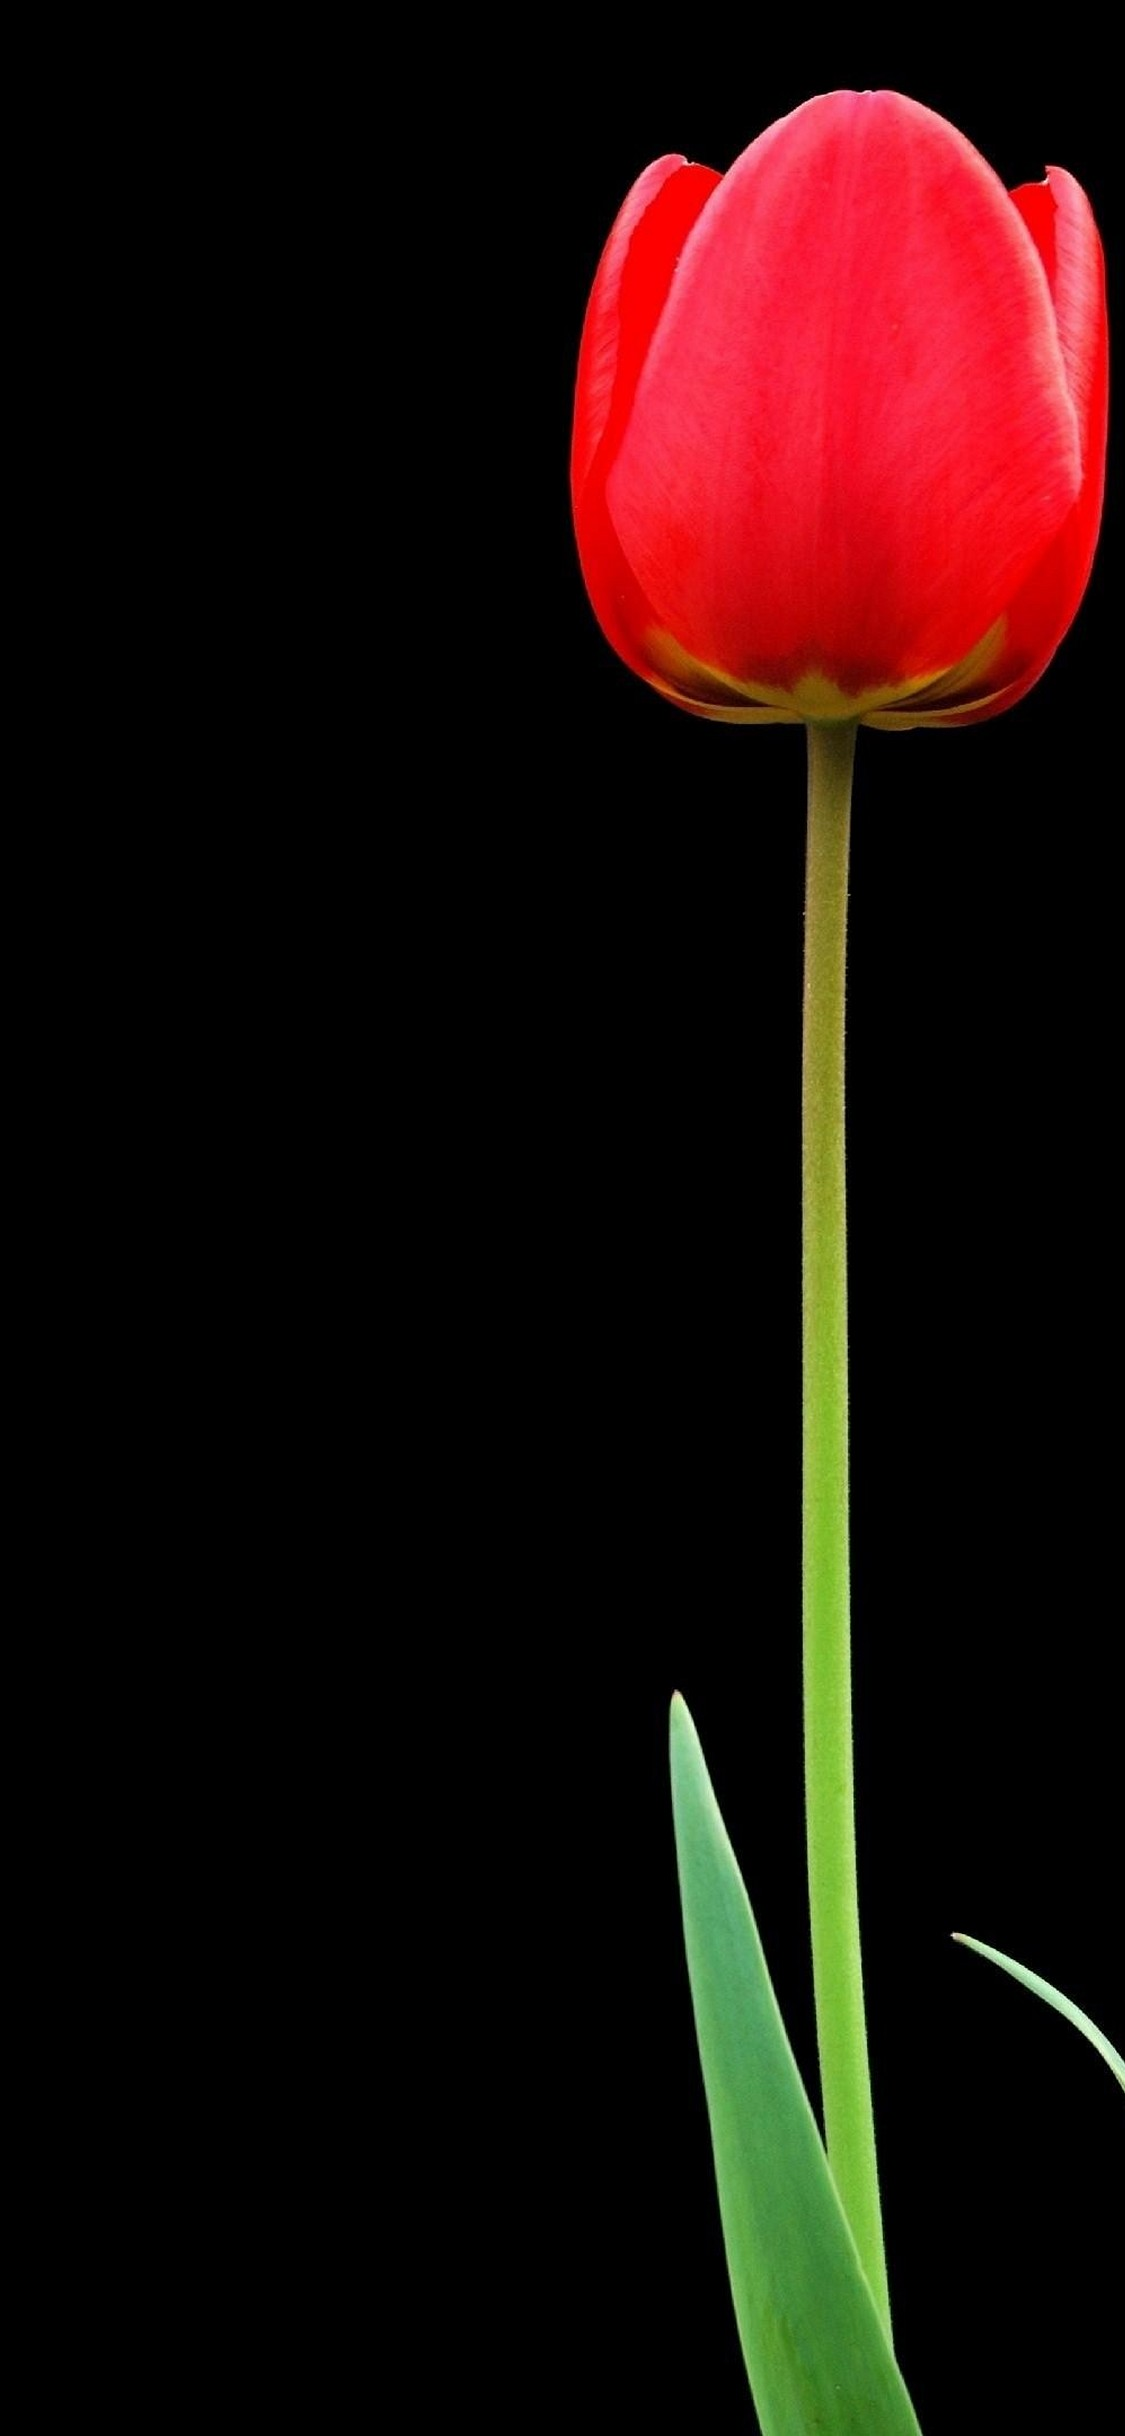 Tulip Red Flower Hd Wallpaper 1125x2436